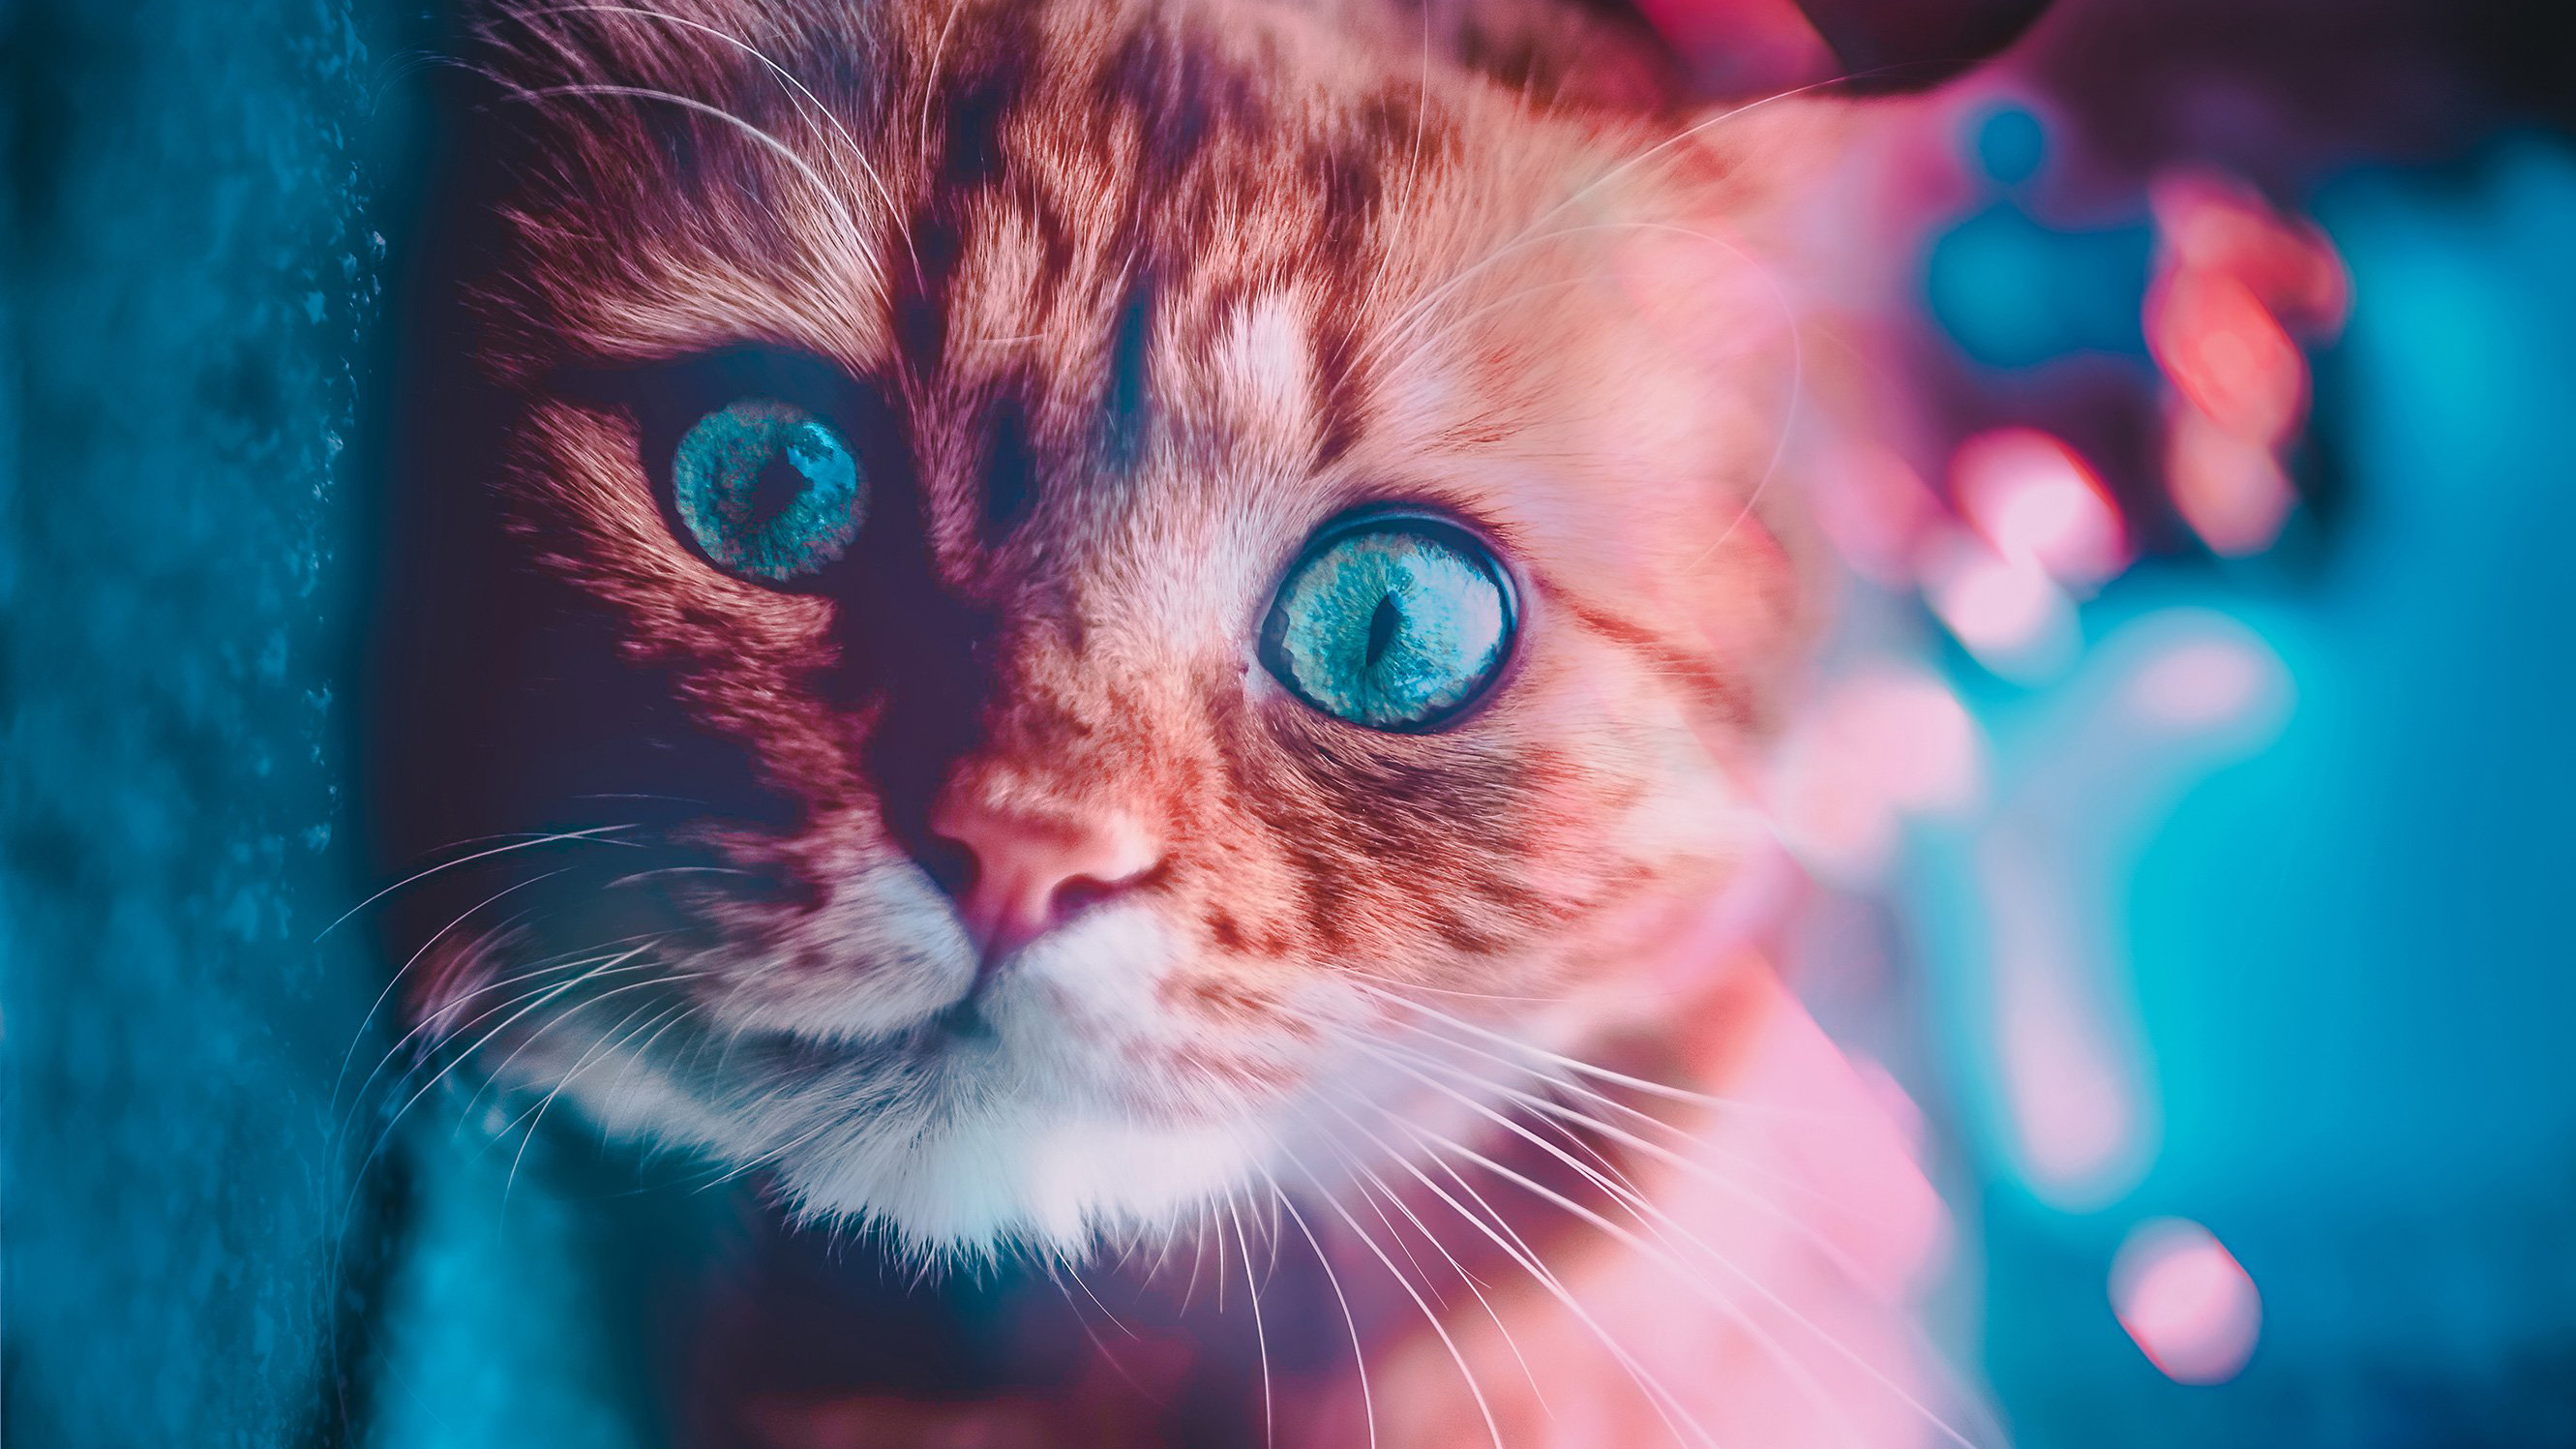 1920x1080 Cat Glowing Eyes Laptop Full Hd 1080p Hd 4k Wallpapers Images Backgrounds Photos And Pictures